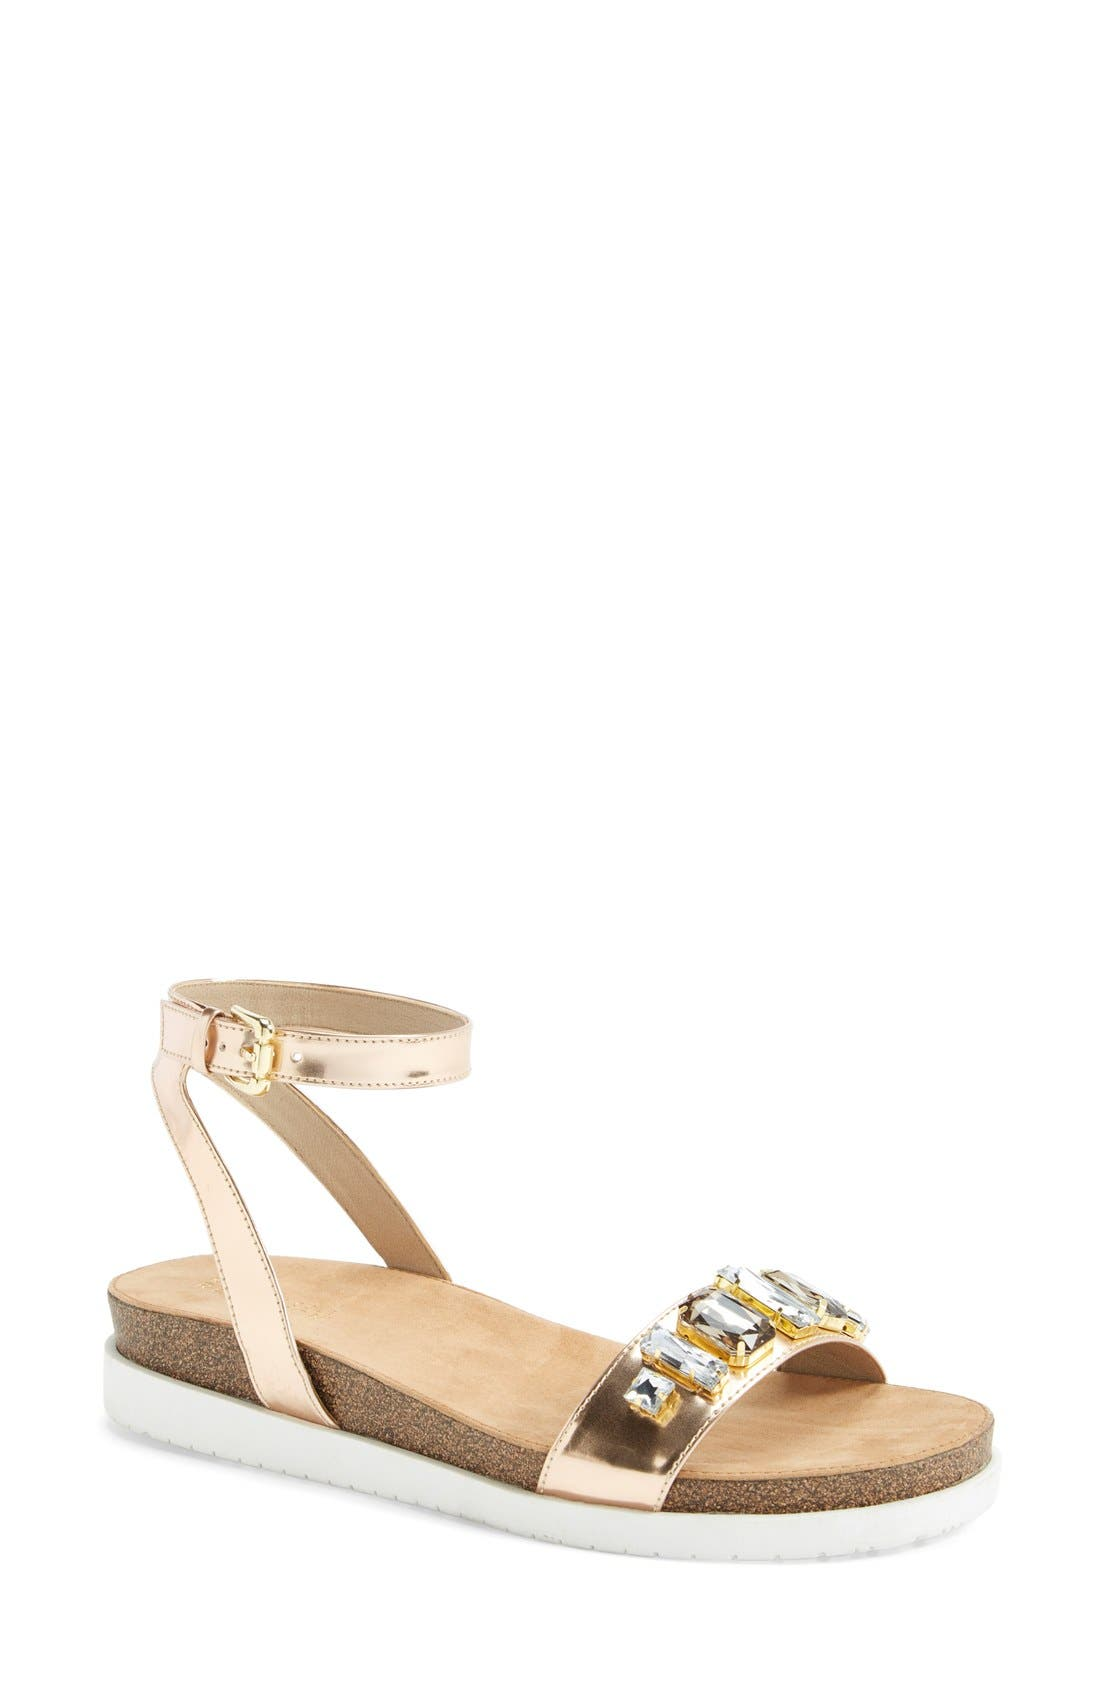 Main Image - Kenneth Cole Reaction 'So Wild' Ankle Strap Sandal (Women)